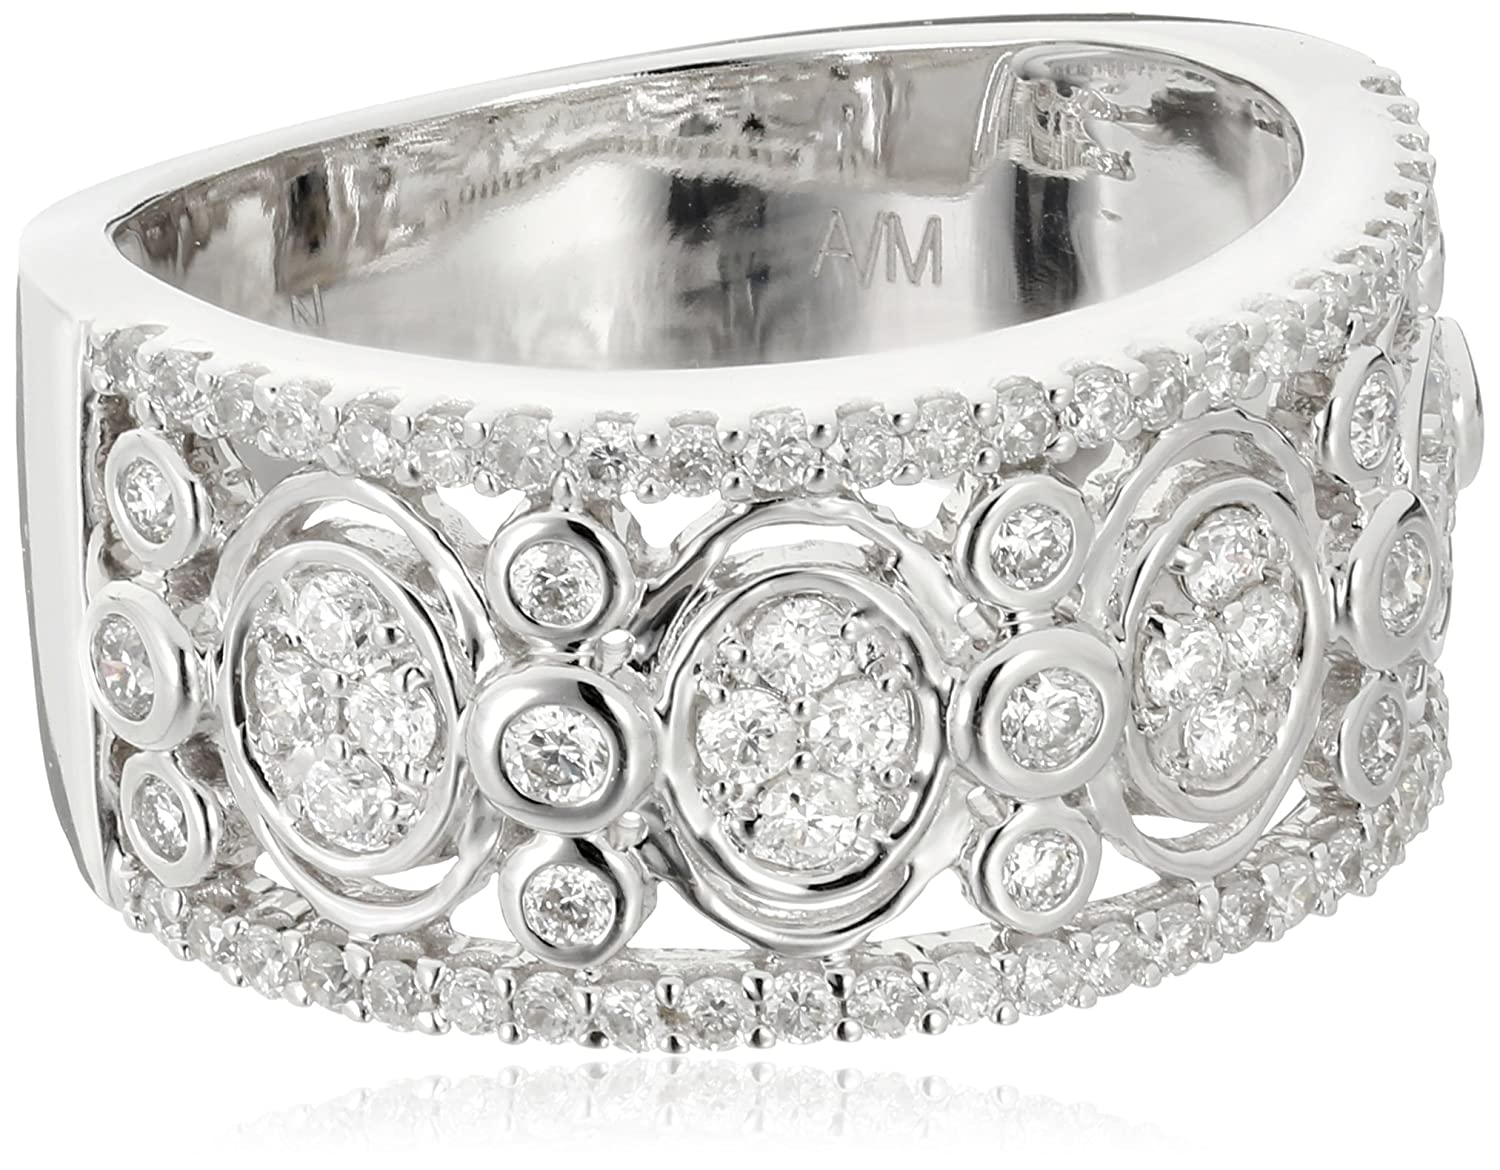 14k White Gold Diamond Cocktail Ring (5/8 cttw, H-I Color, I1-I2 Clarity)